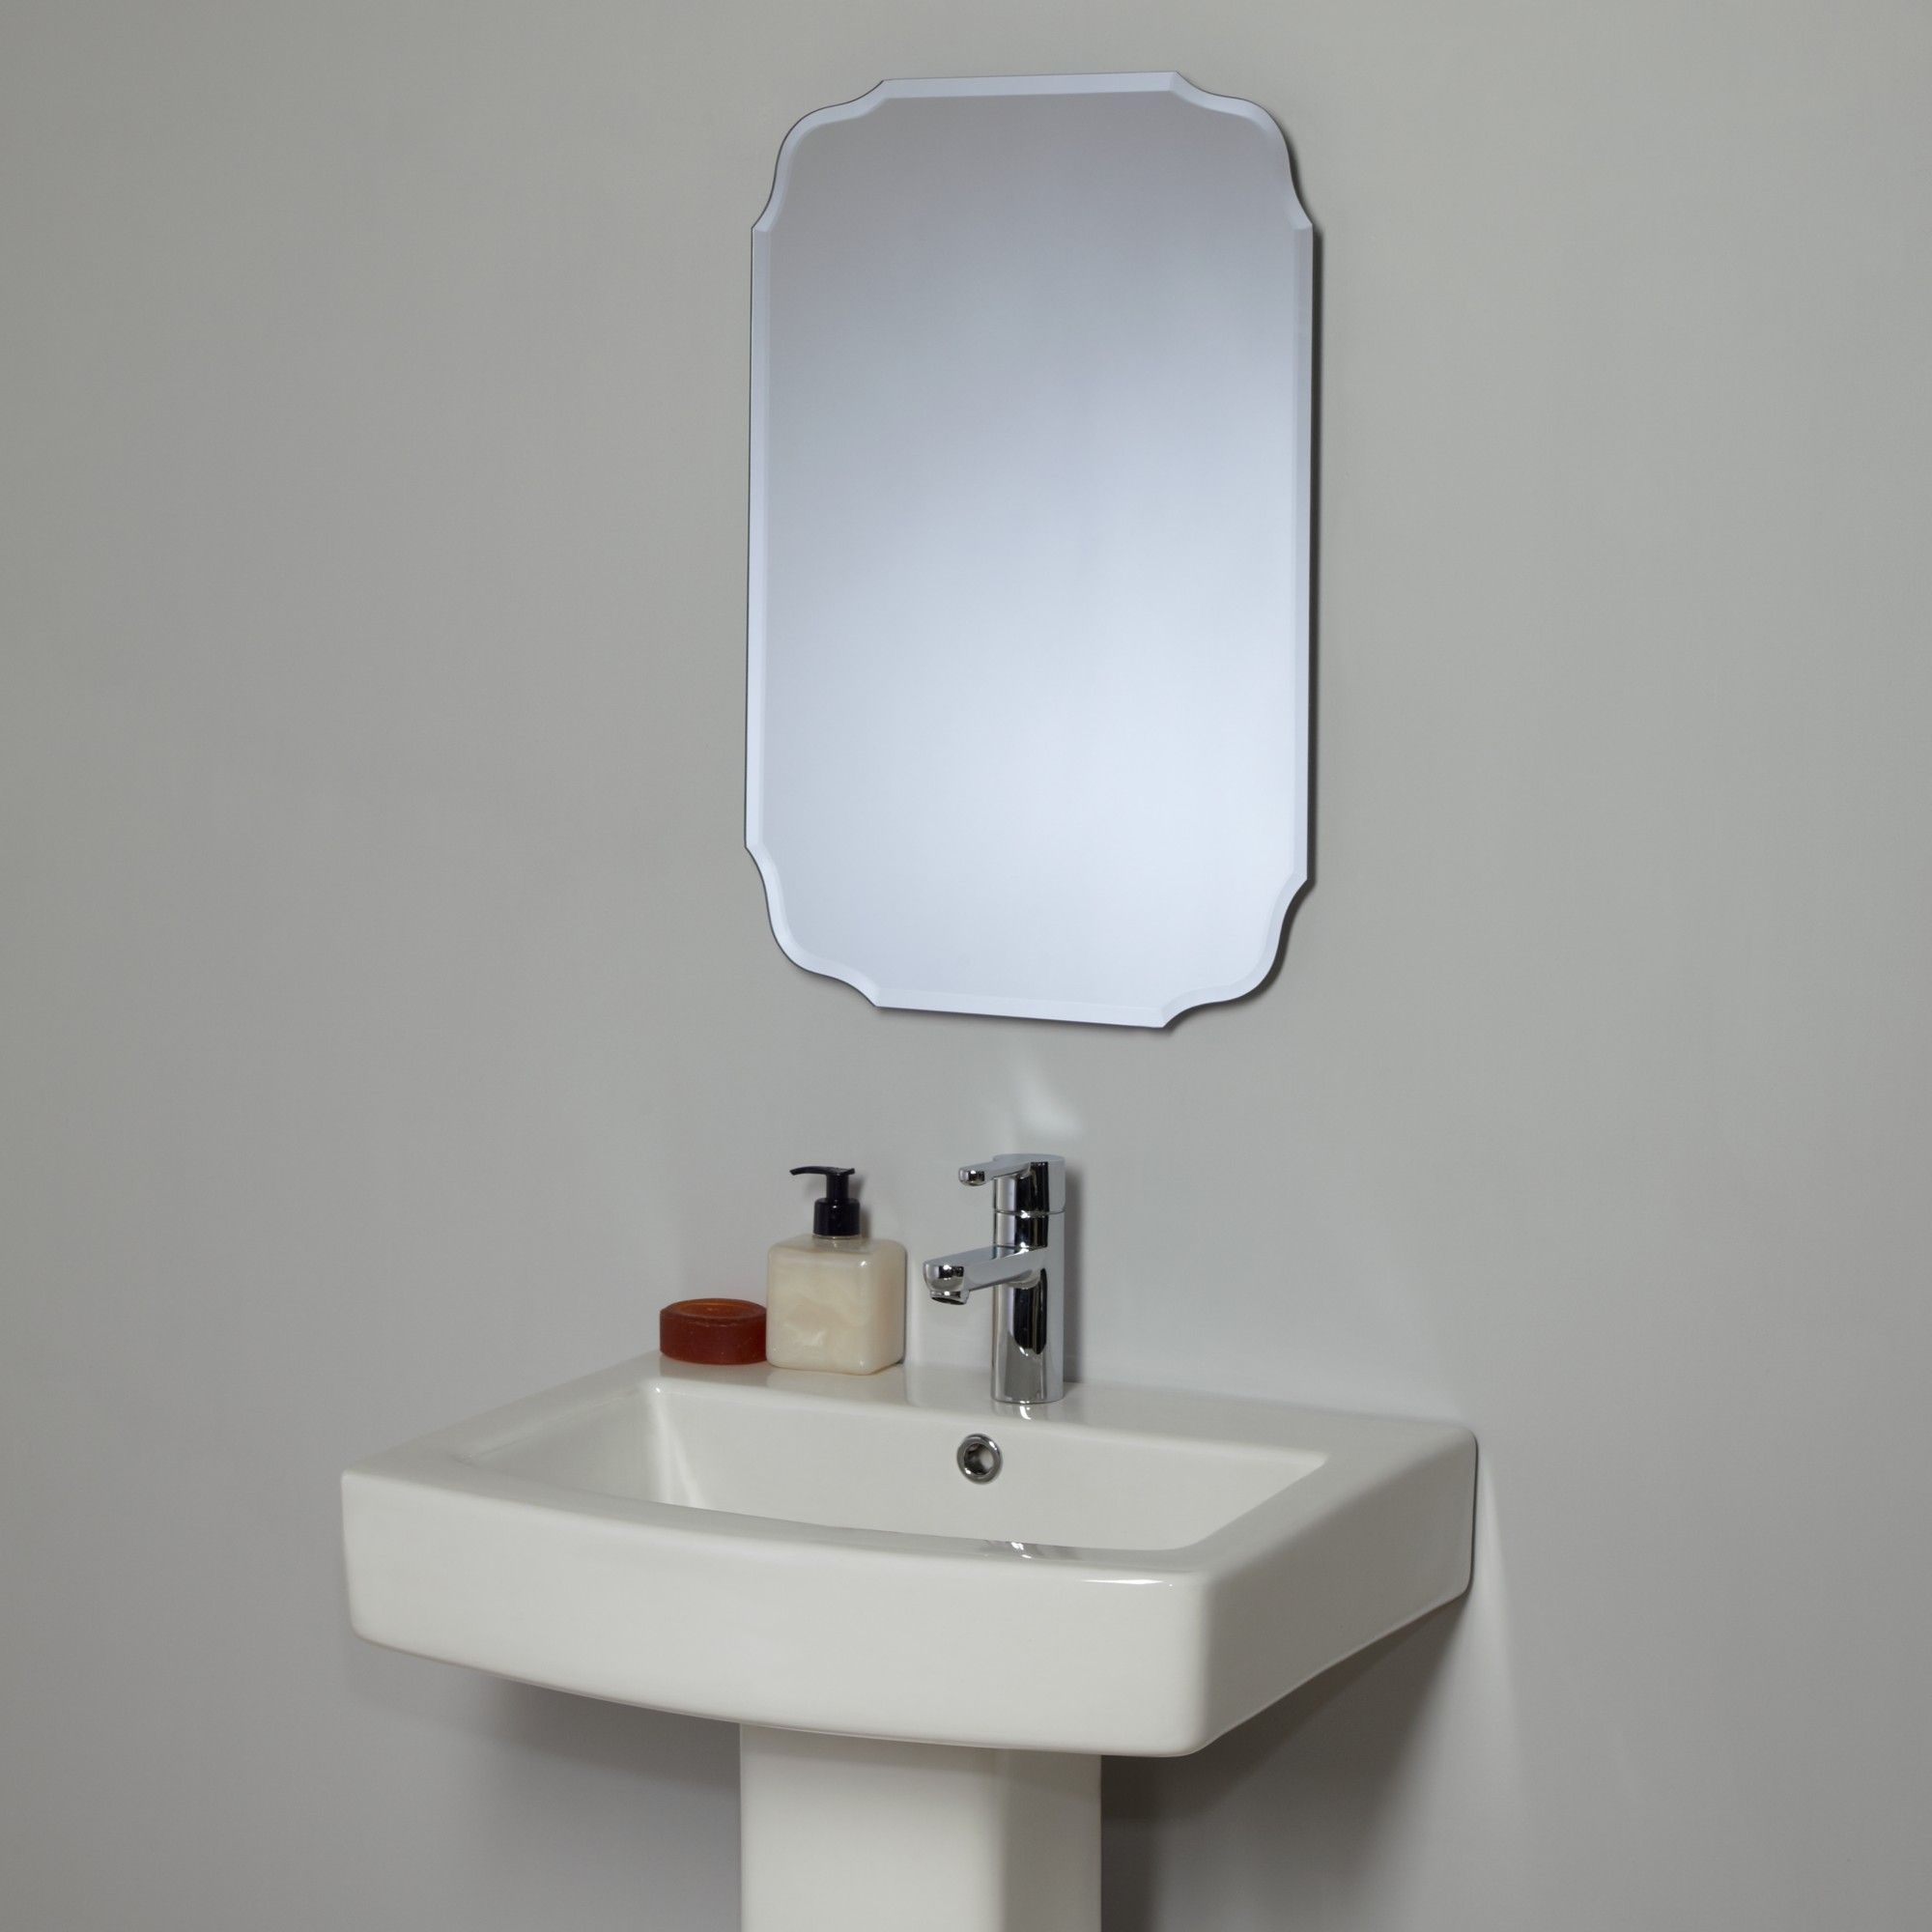 Vintage Bathroom Wall Mirror Vintage Bathrooms John Lewis and